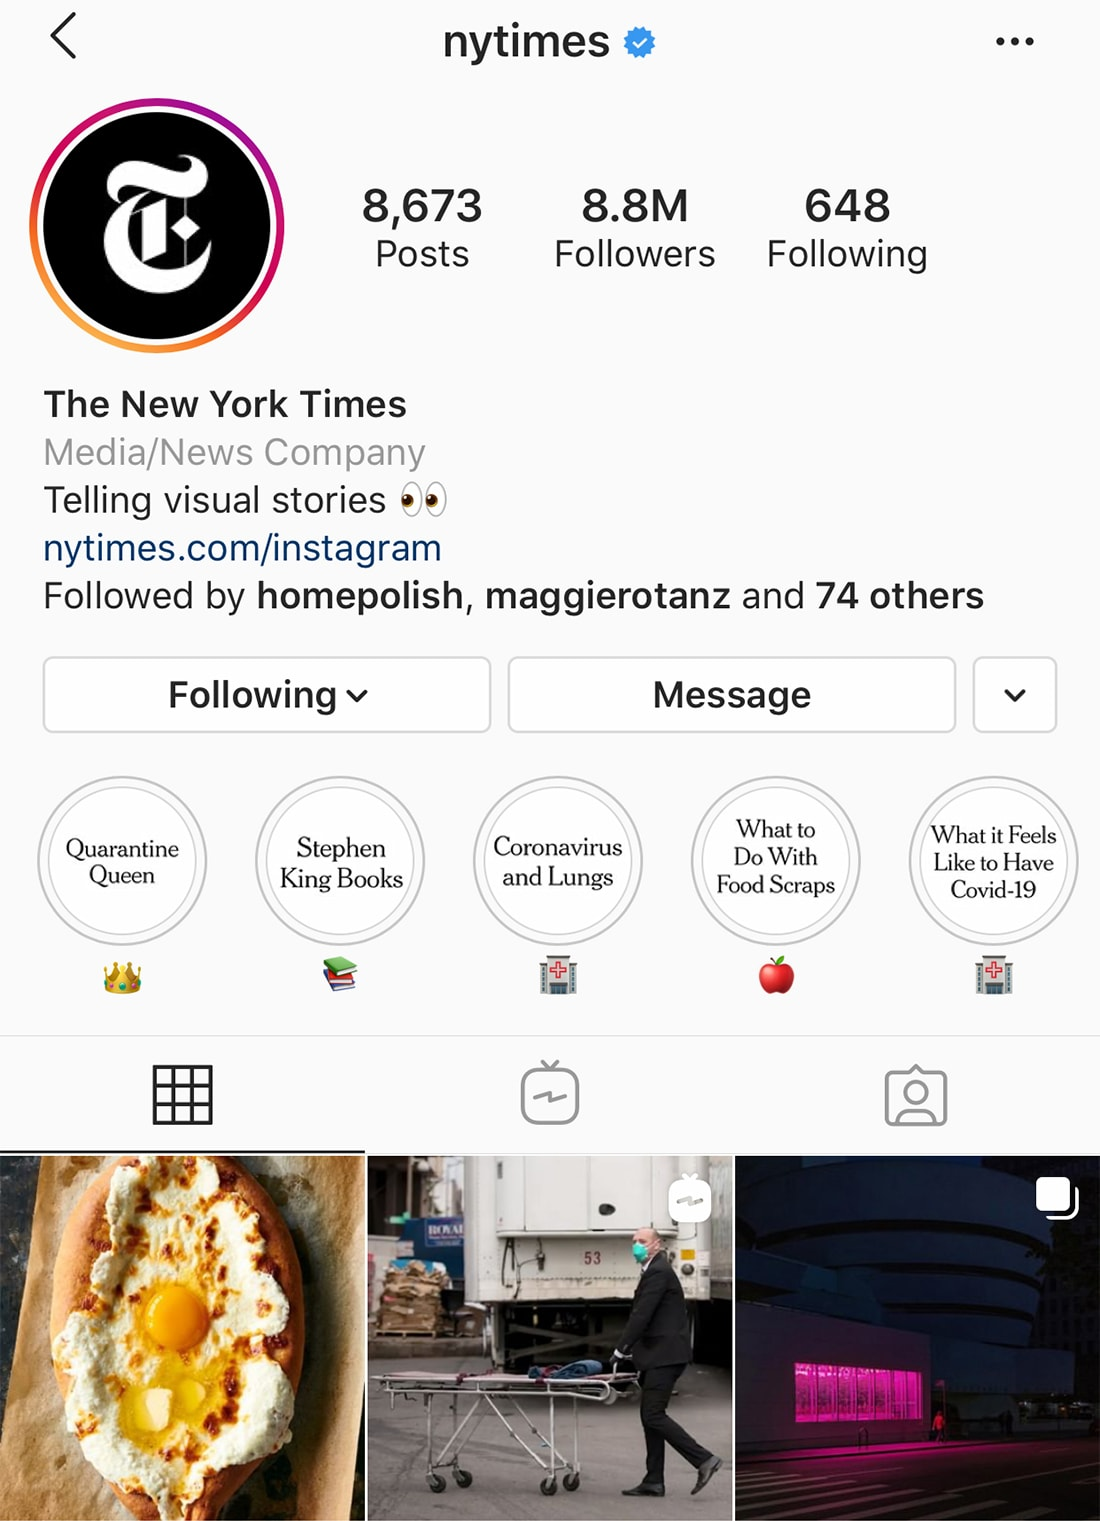 insta-highlights 8 Tips for Designing Instagram Stories That Don't Suck design tips